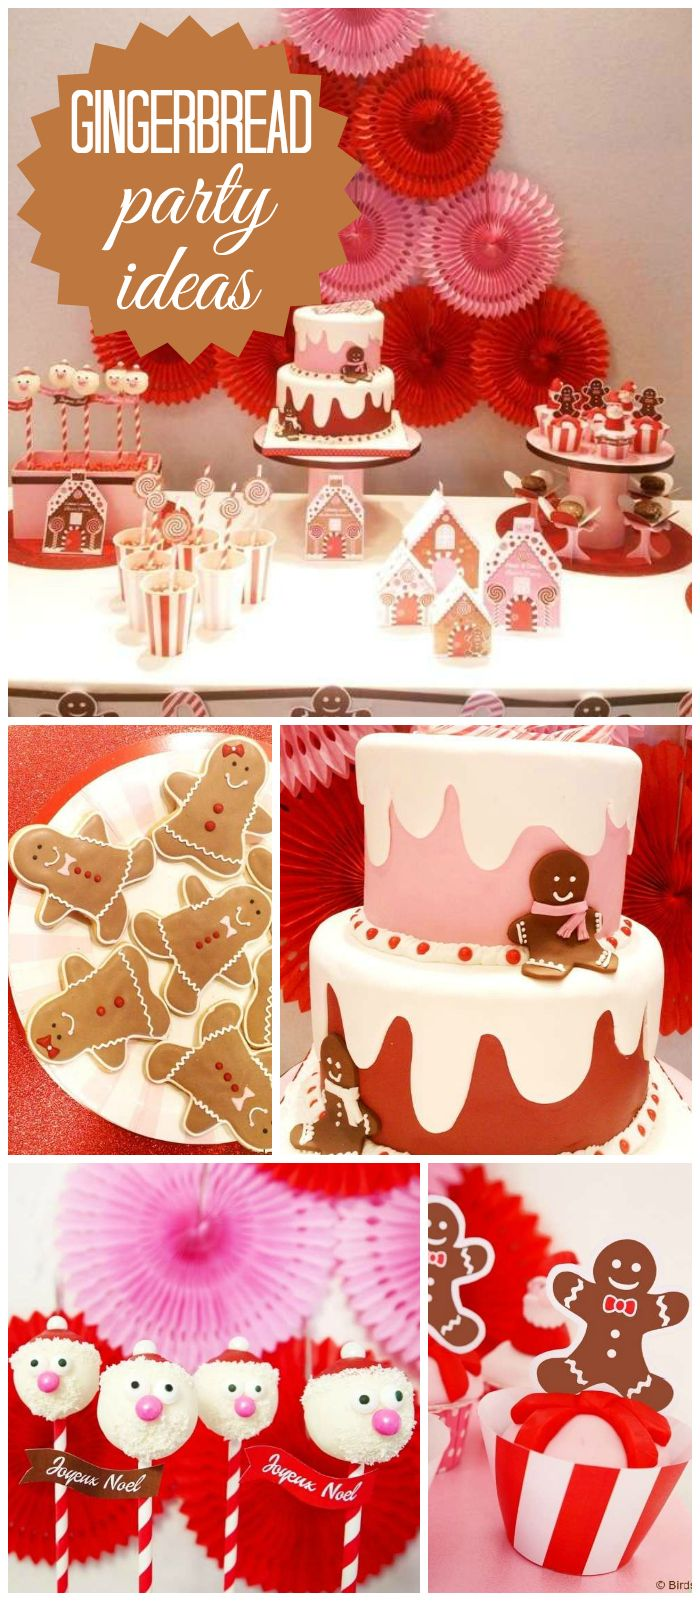 A cute gingerbread candyland Christmas party with cupcakes, cake pops, candy  and gingerbread cookies! See more party planning ideas at CatchMyParty.com!